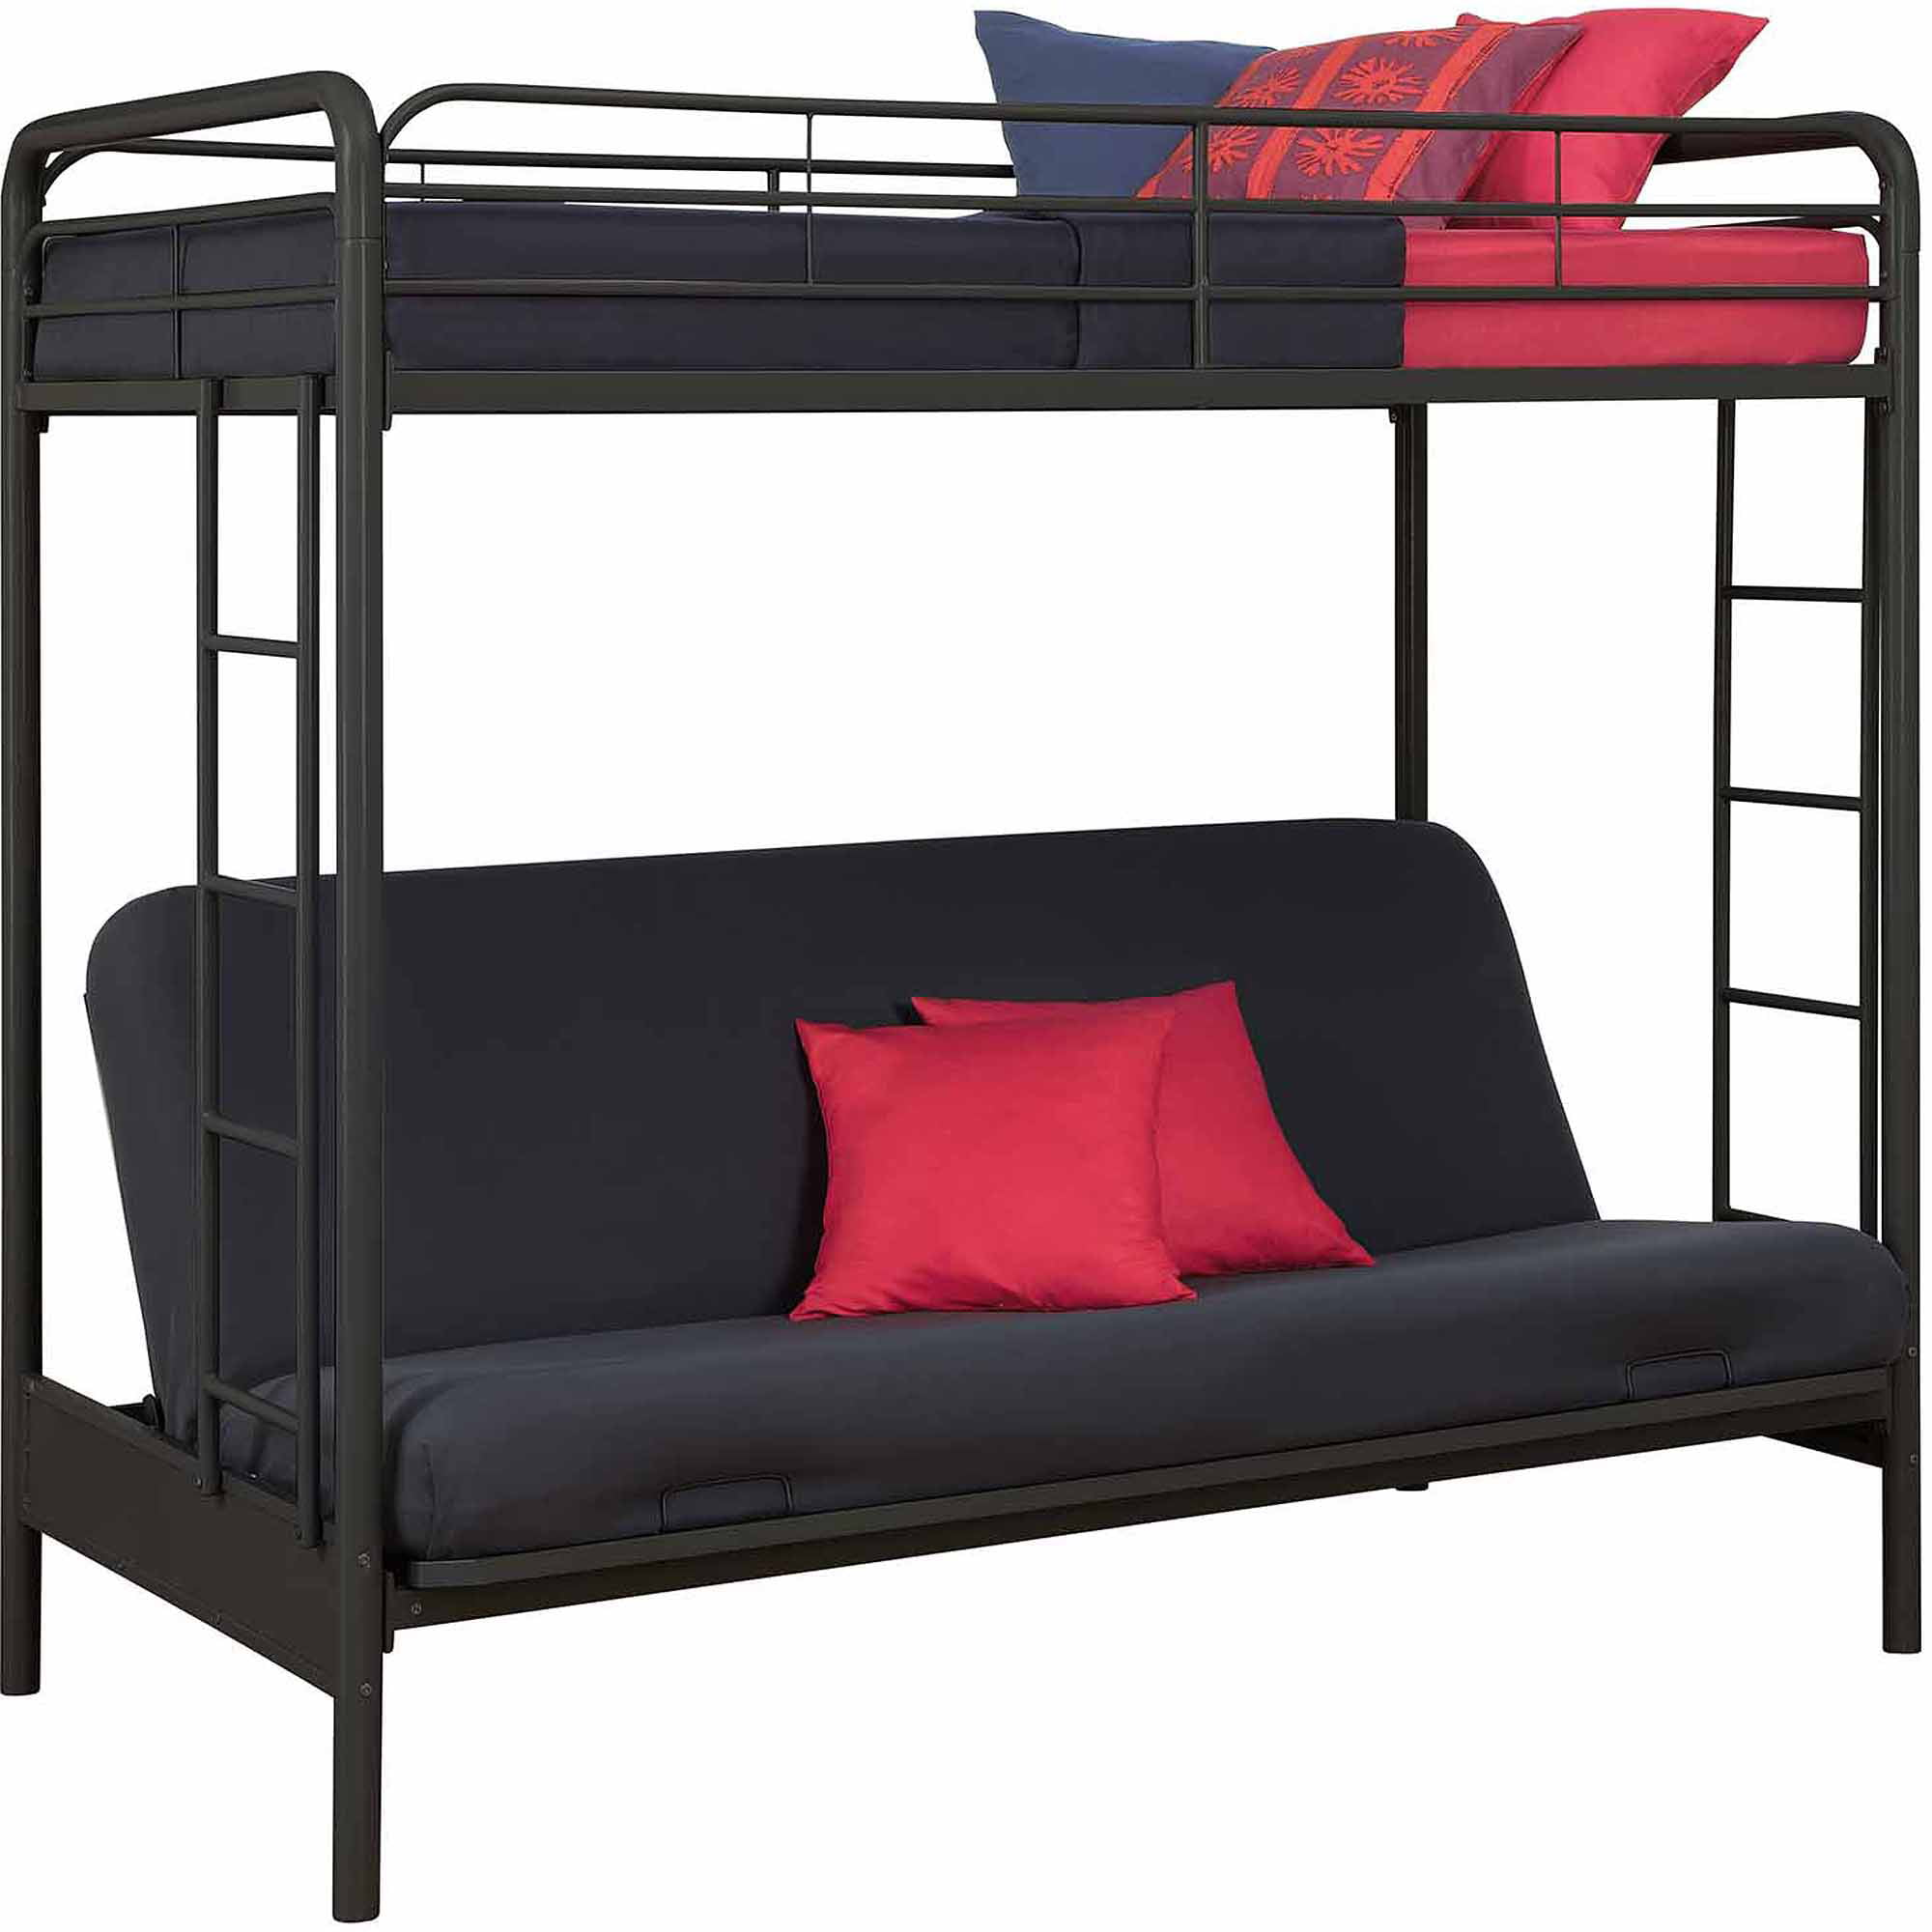 Medium image of dorel home products twin over futon low loft bed with built in ladder   walmart